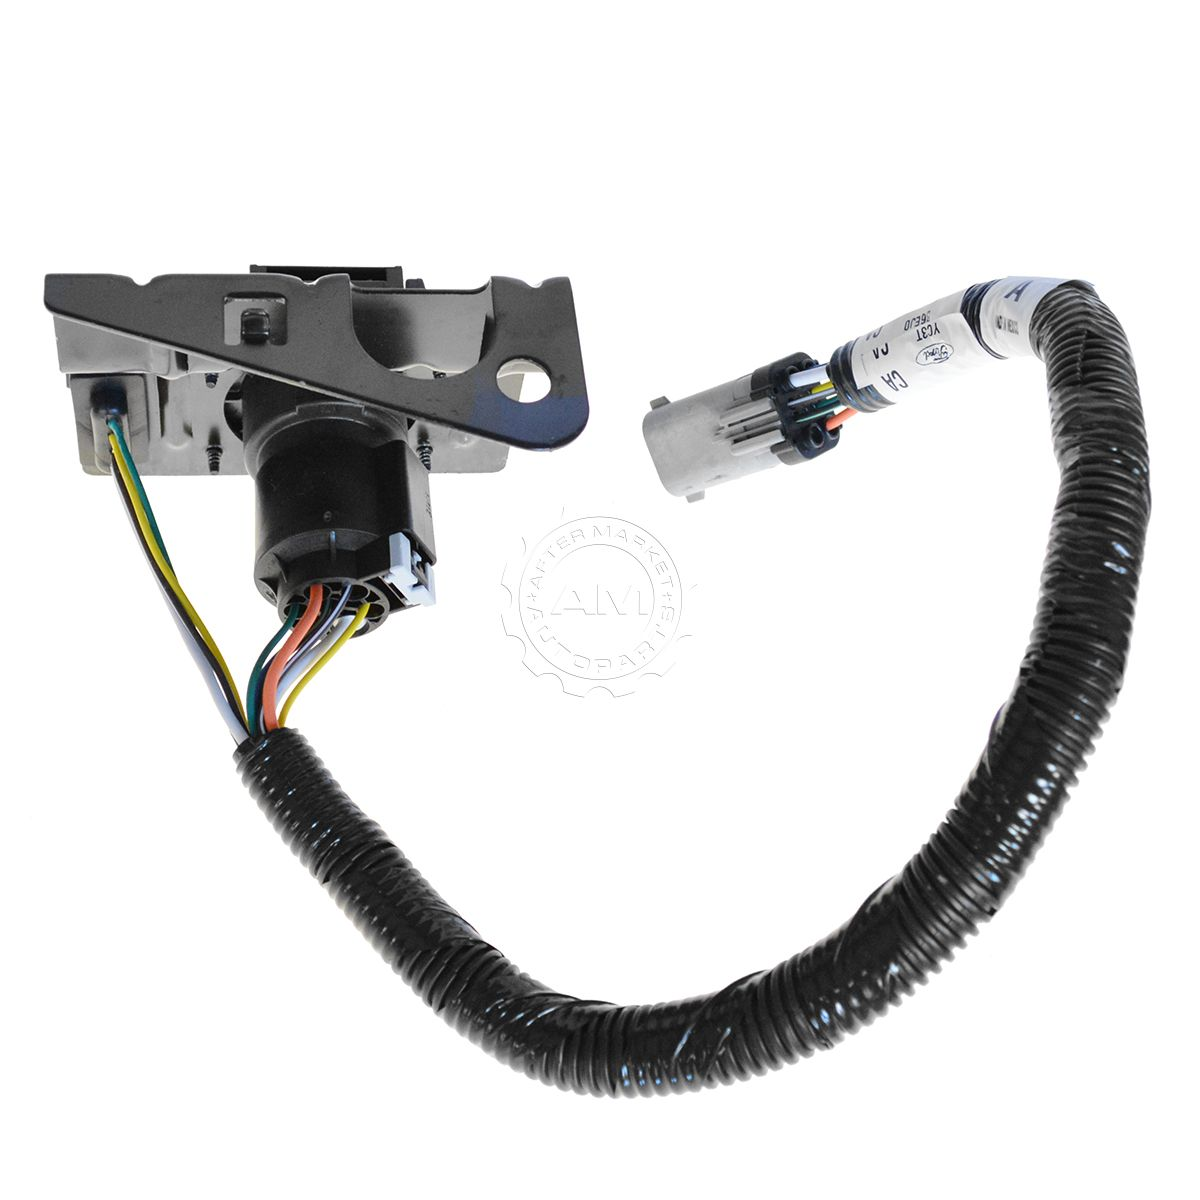 4 Pin Wiring Harness Bookmark About Diagram Jeep Tow Ford 7 Trailer W Plug Bracket For F250 Rh Ebay Com 2018 Wrangler Jl 4dr